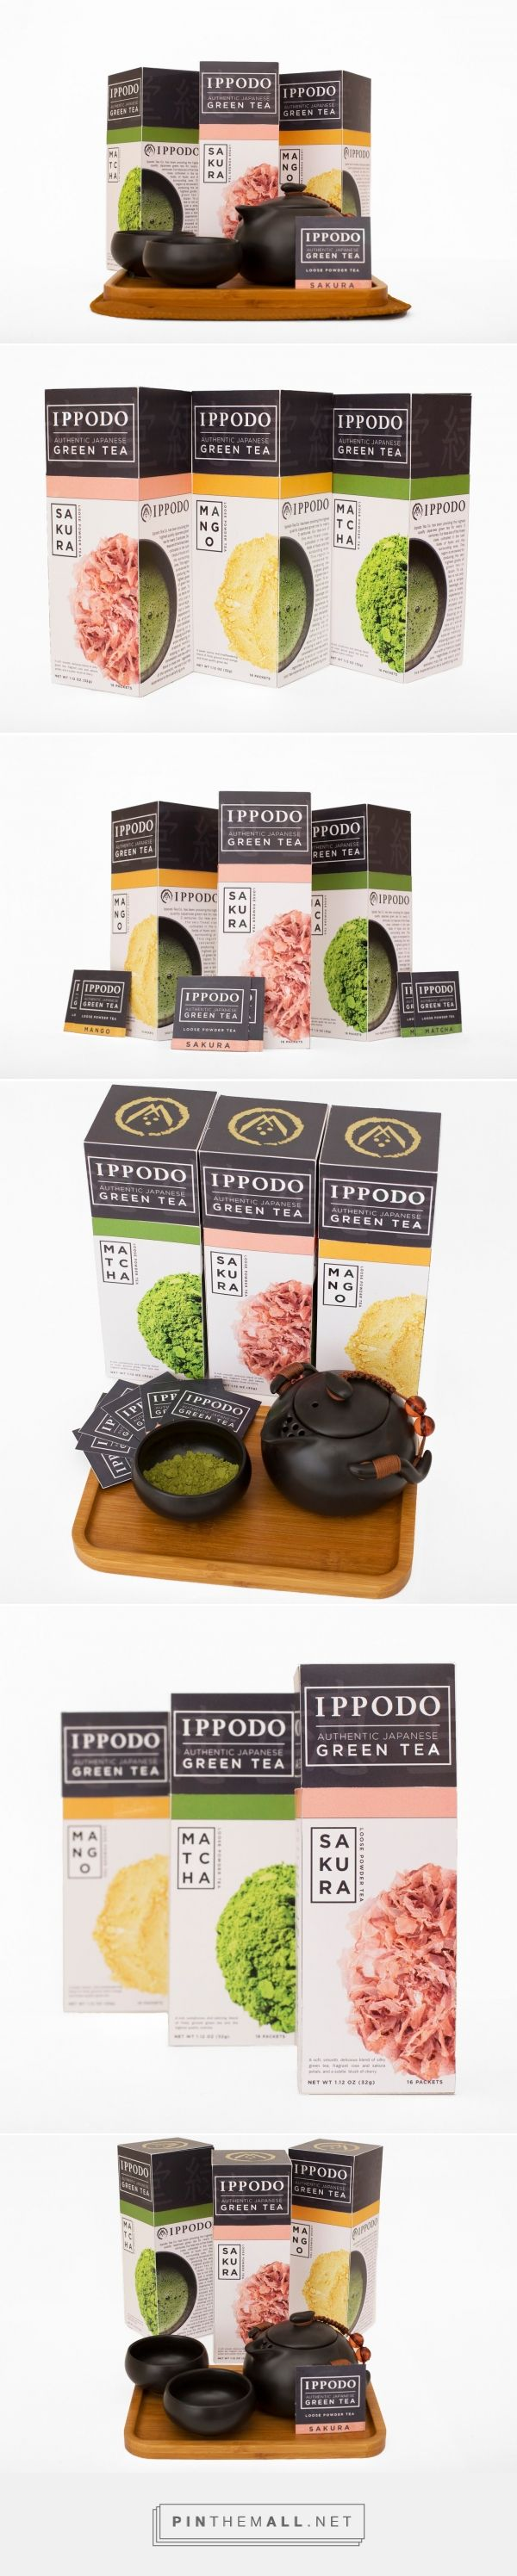 Ippodo Tea Co. (Student Project)